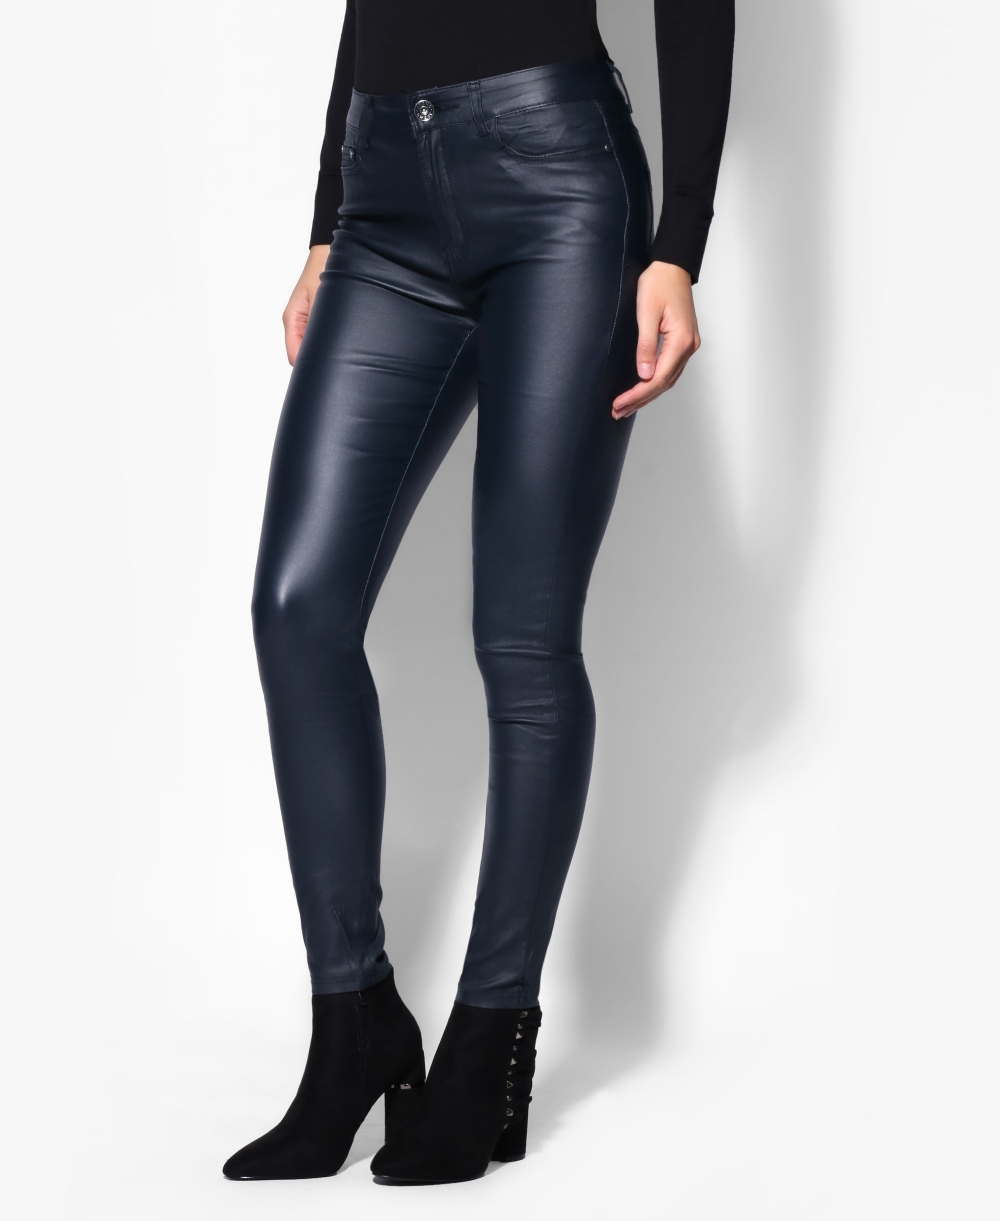 2833cfc25a3c Leather Trousers | Leather Look Skinny Trousers | KRISP